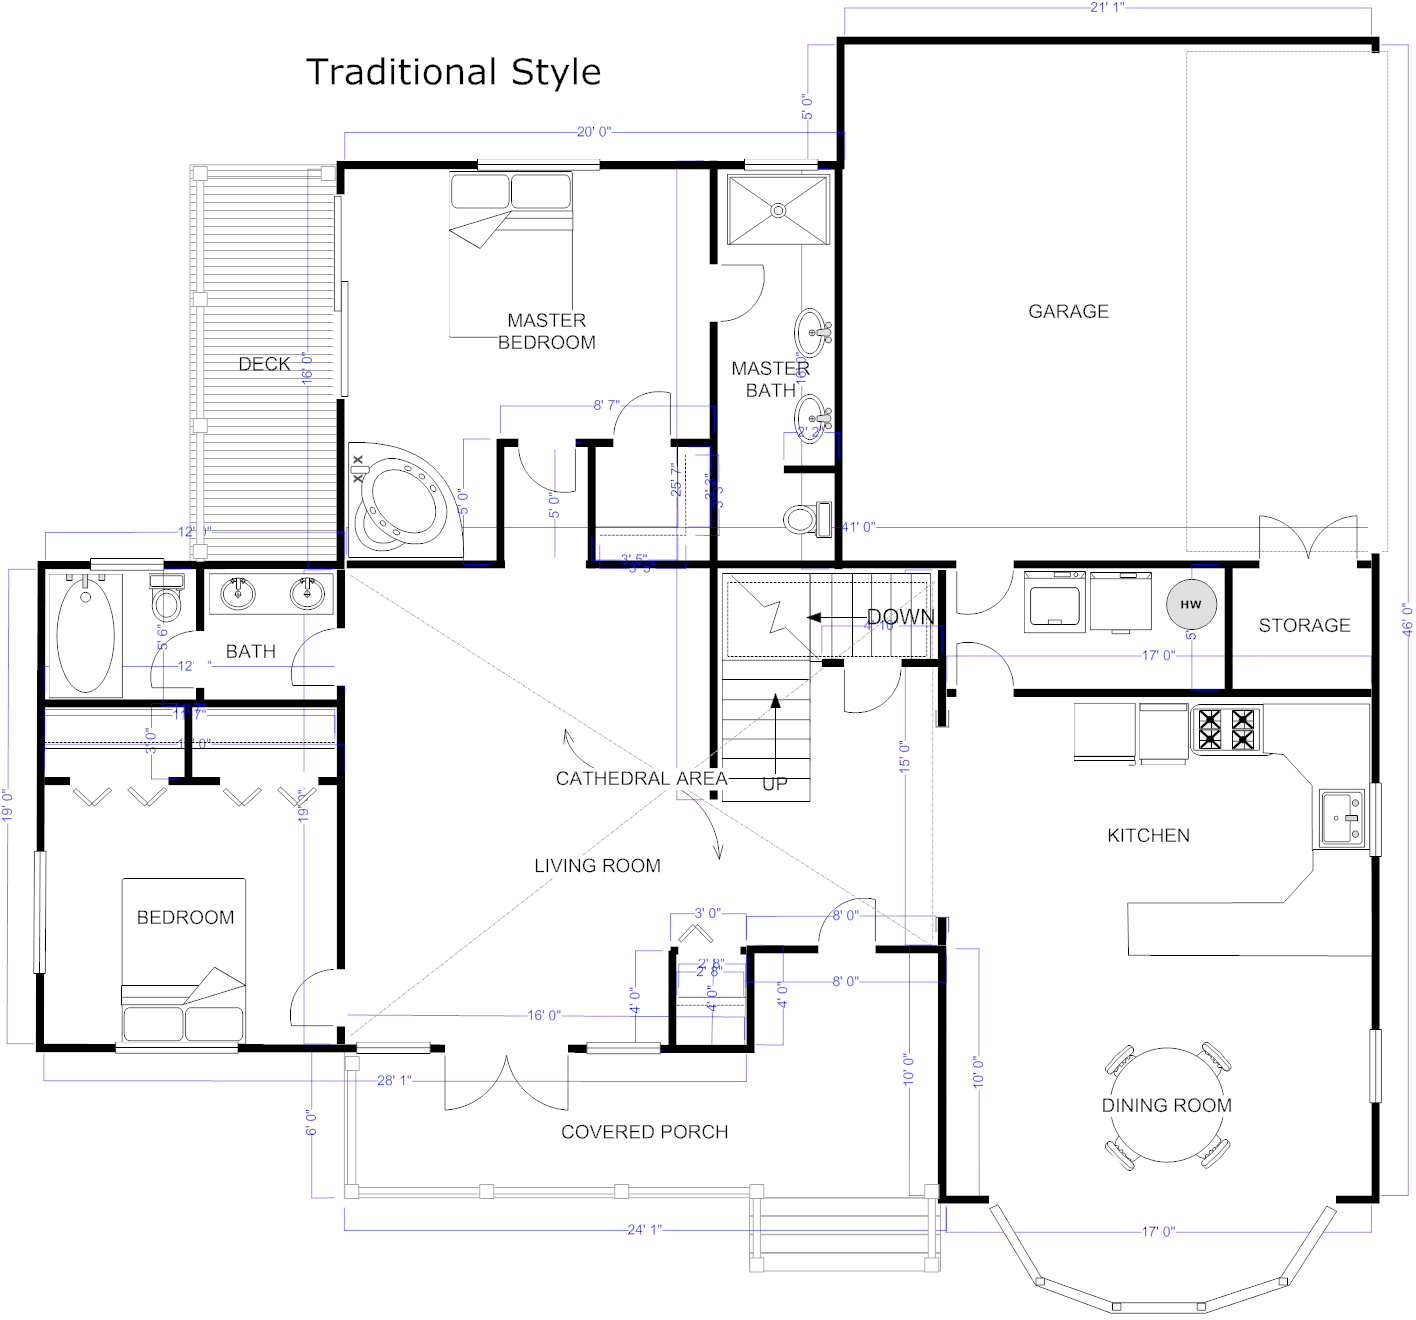 Free 3d Kitchen Design Software Windows 7 Best Free Floor Plan Software With Minimalist Ground